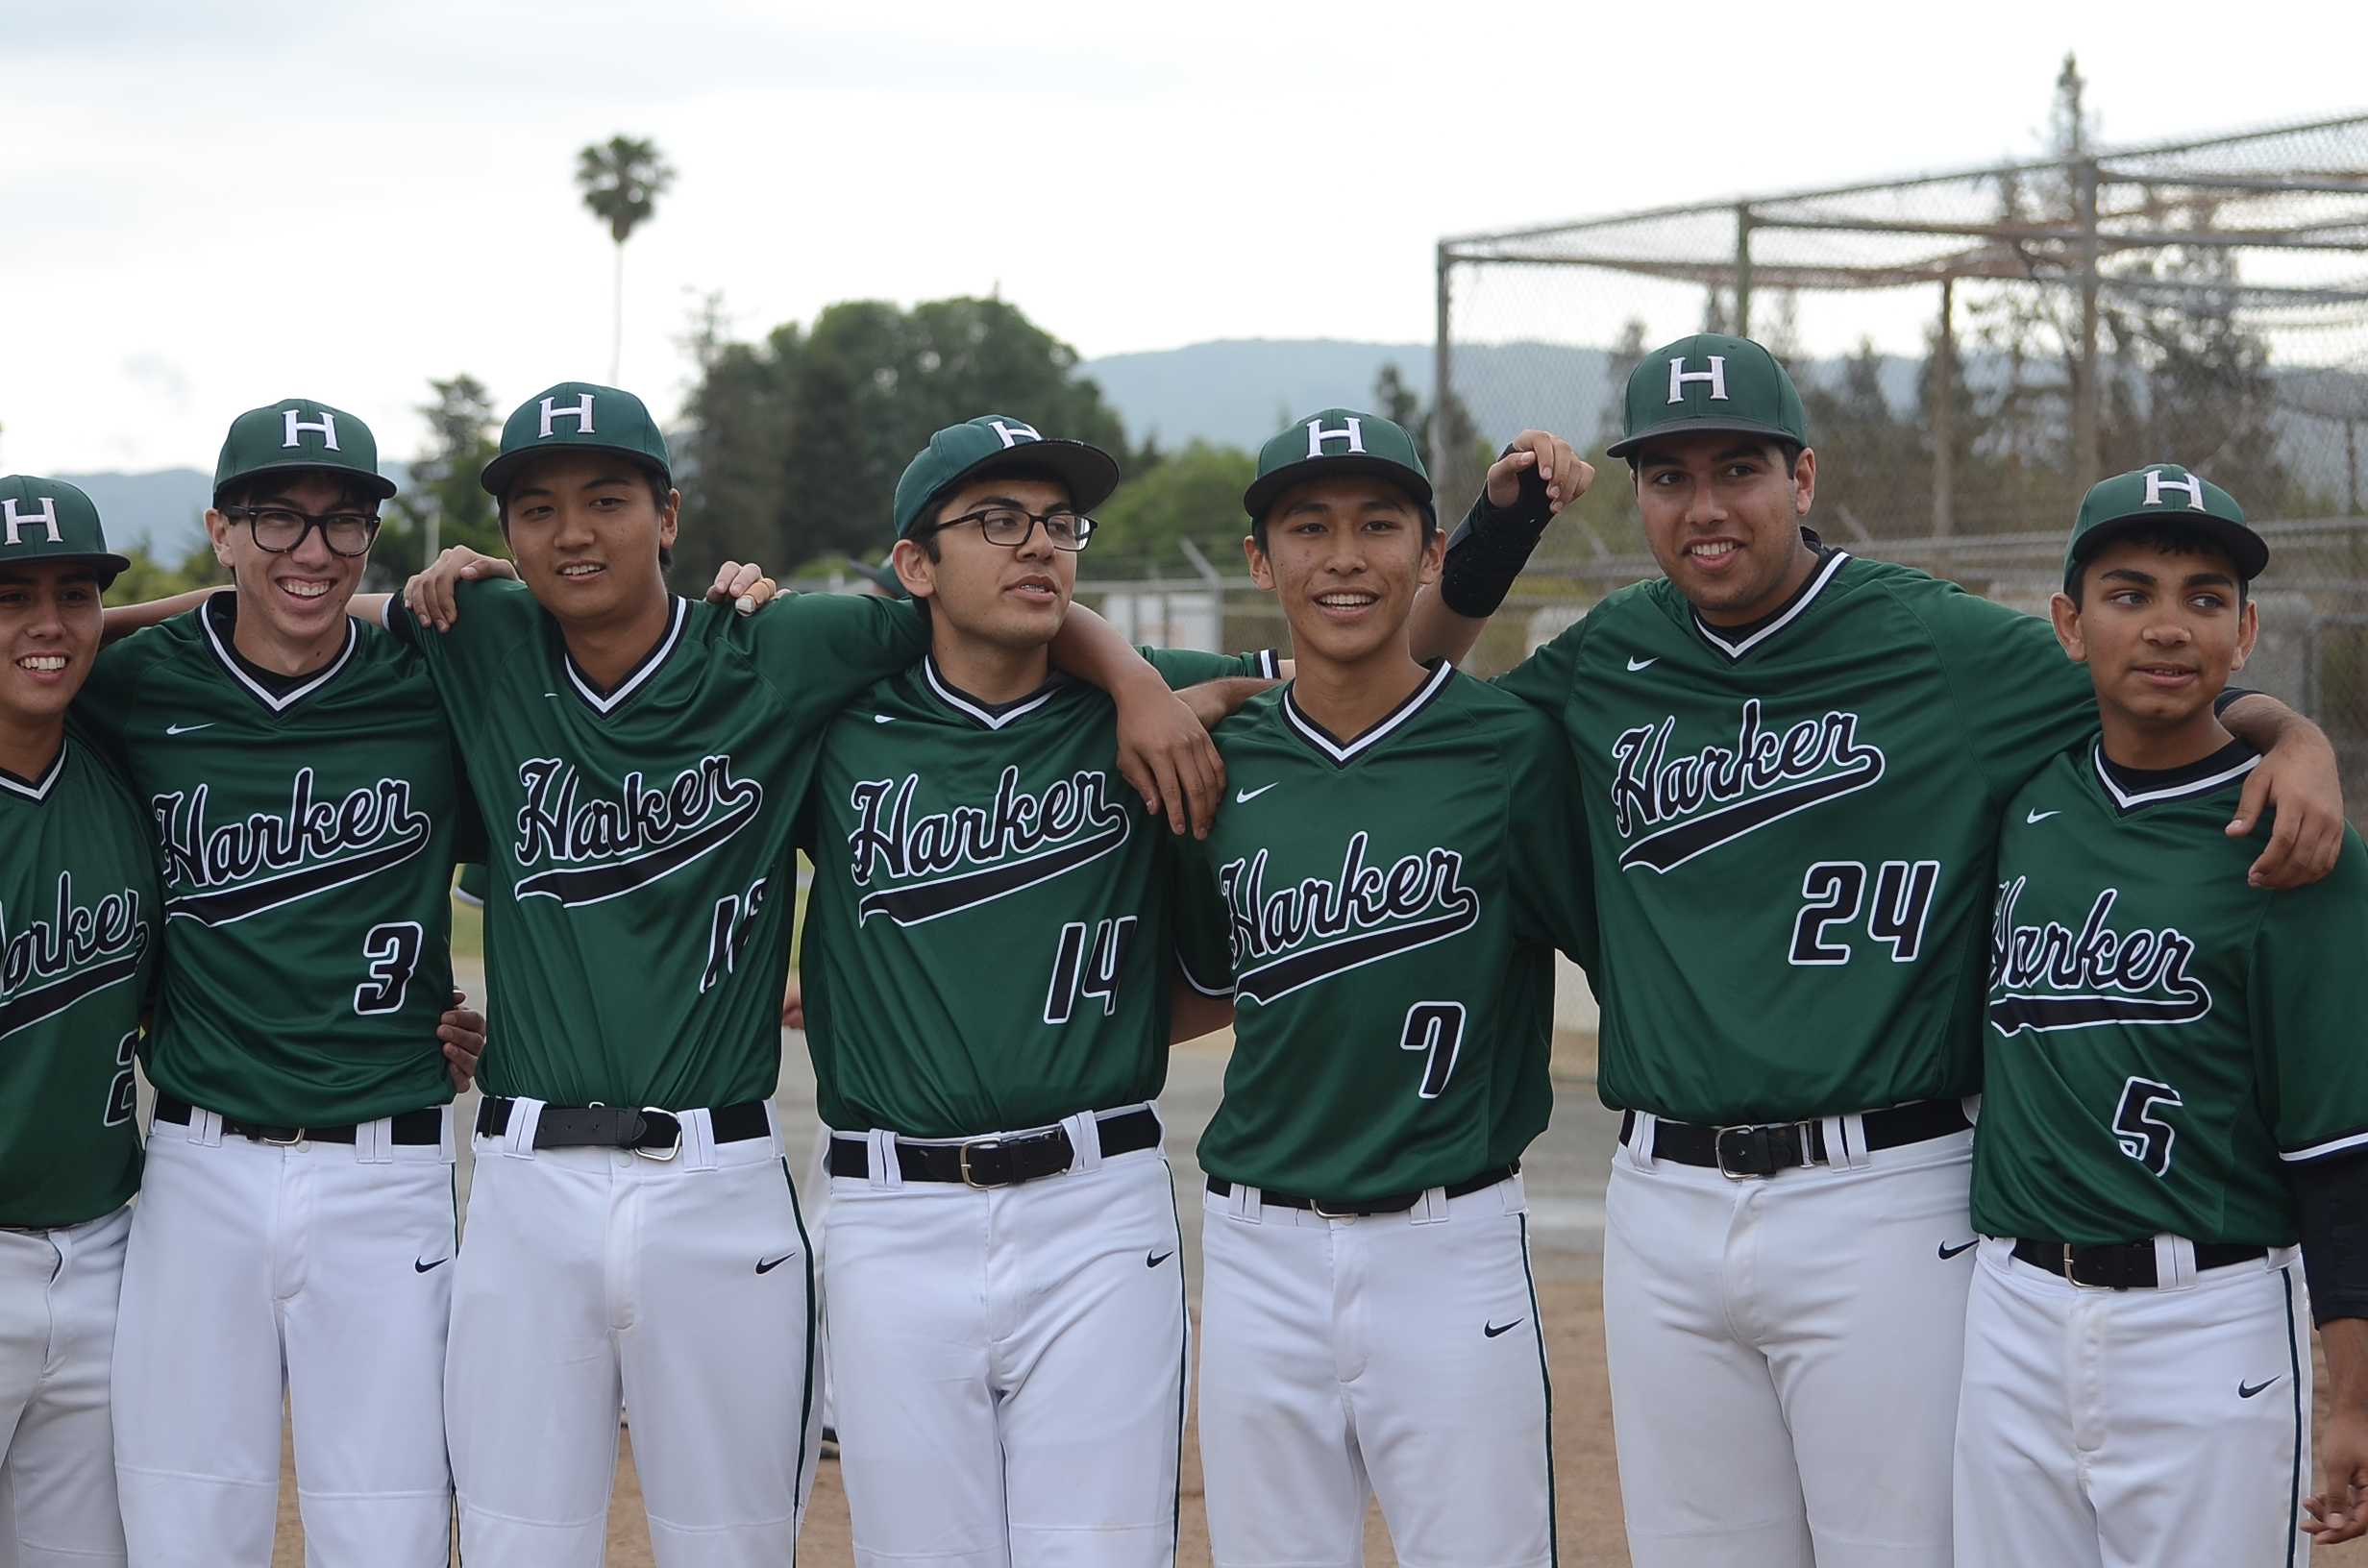 3) The seniors stand together to take a group photo on their last game. Boy's baseball held their senior night on Thursday, May 7.